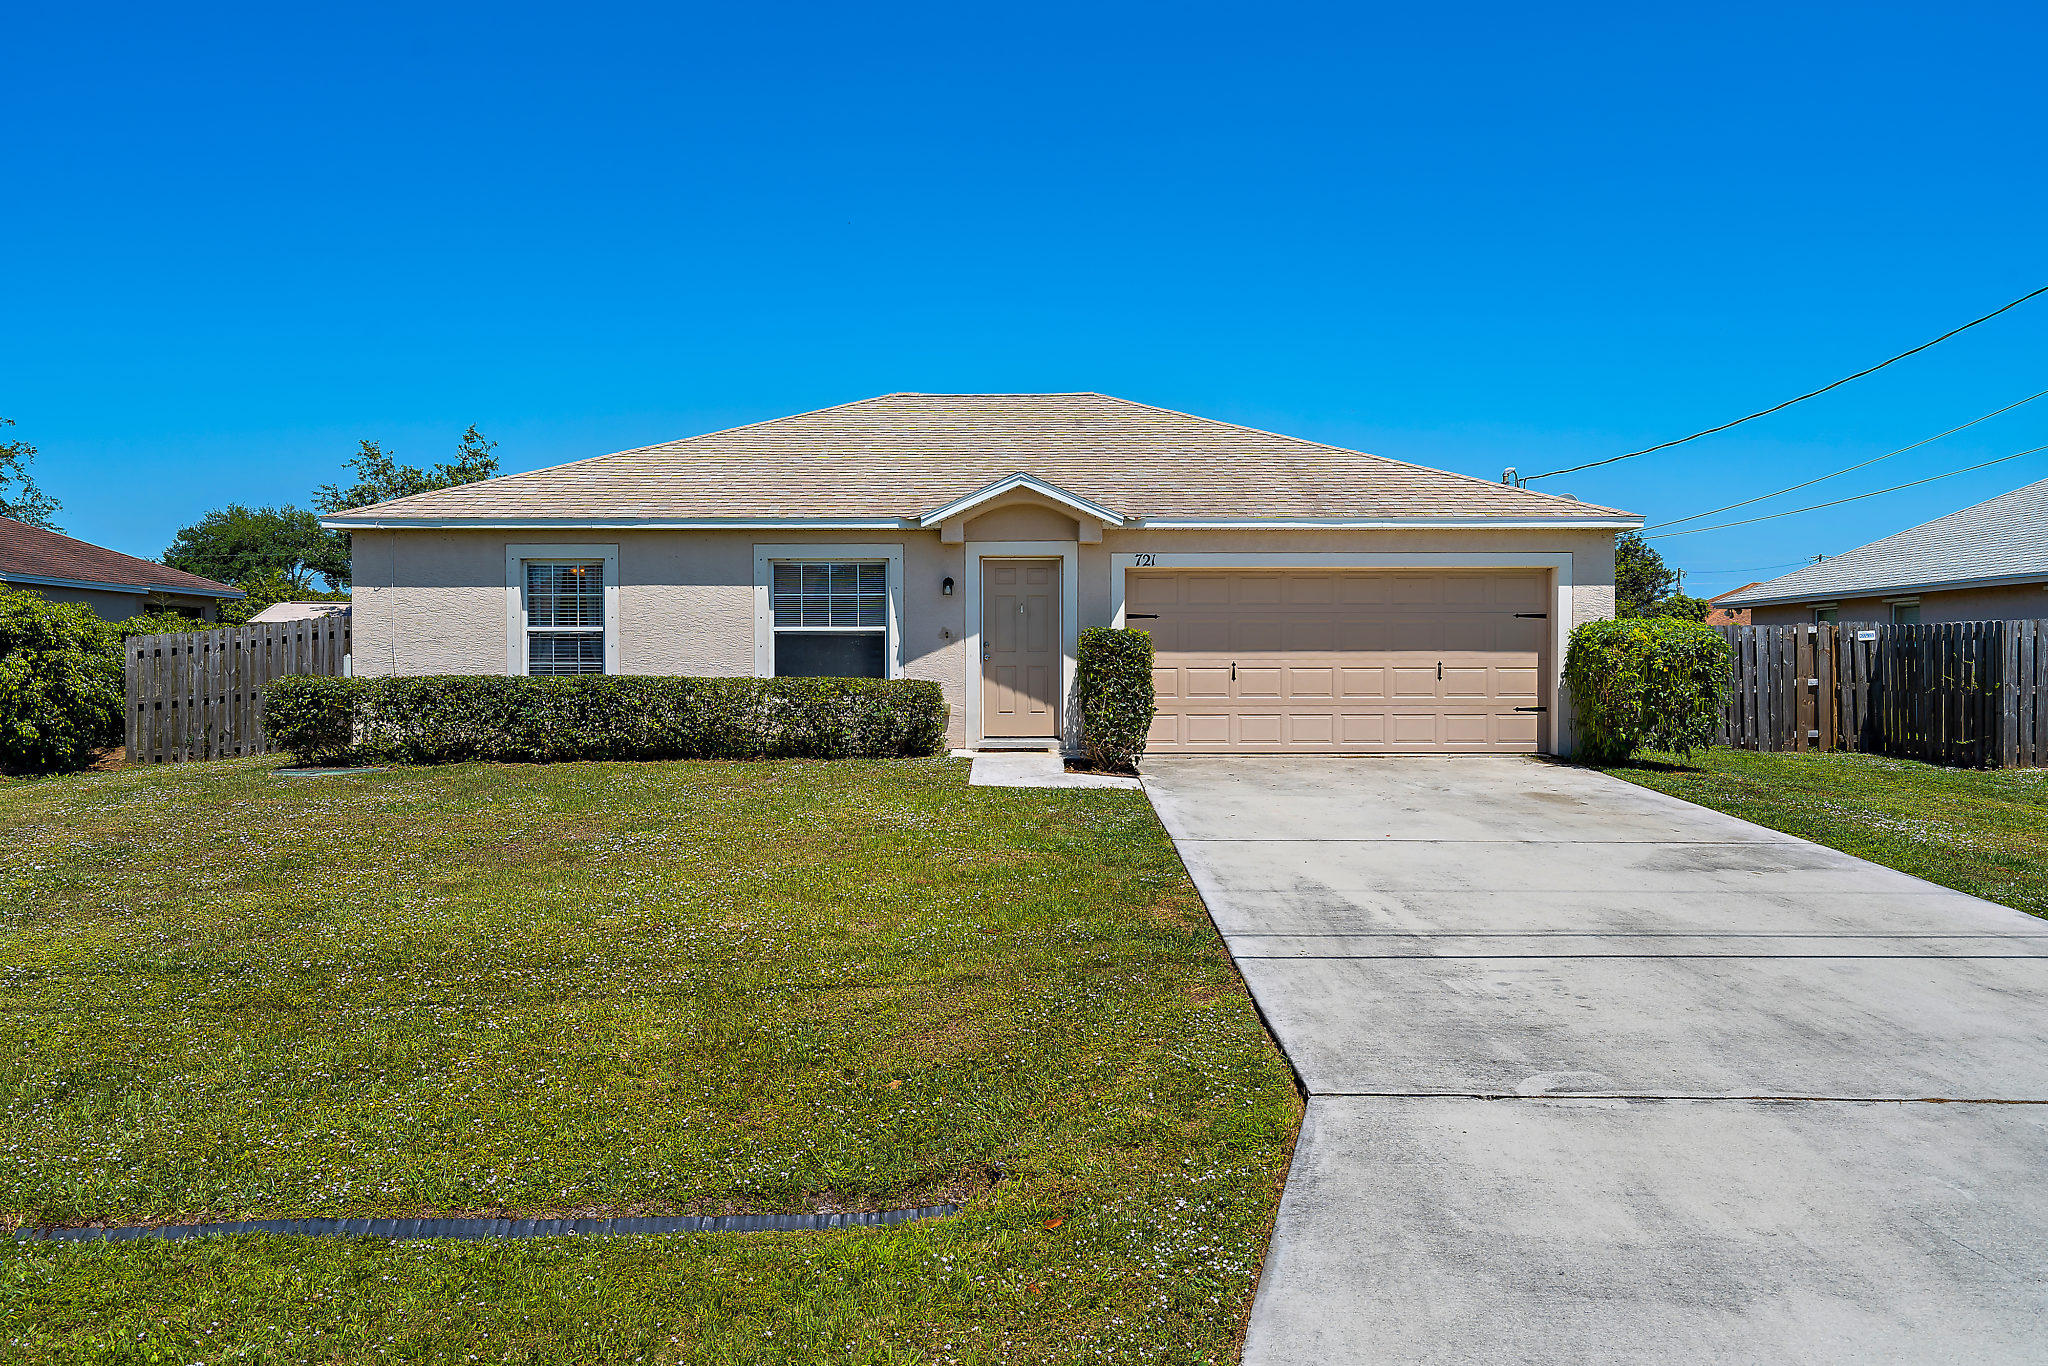 721 SW Mccullough Avenue 34953 - One of Port Saint Lucie Homes for Sale